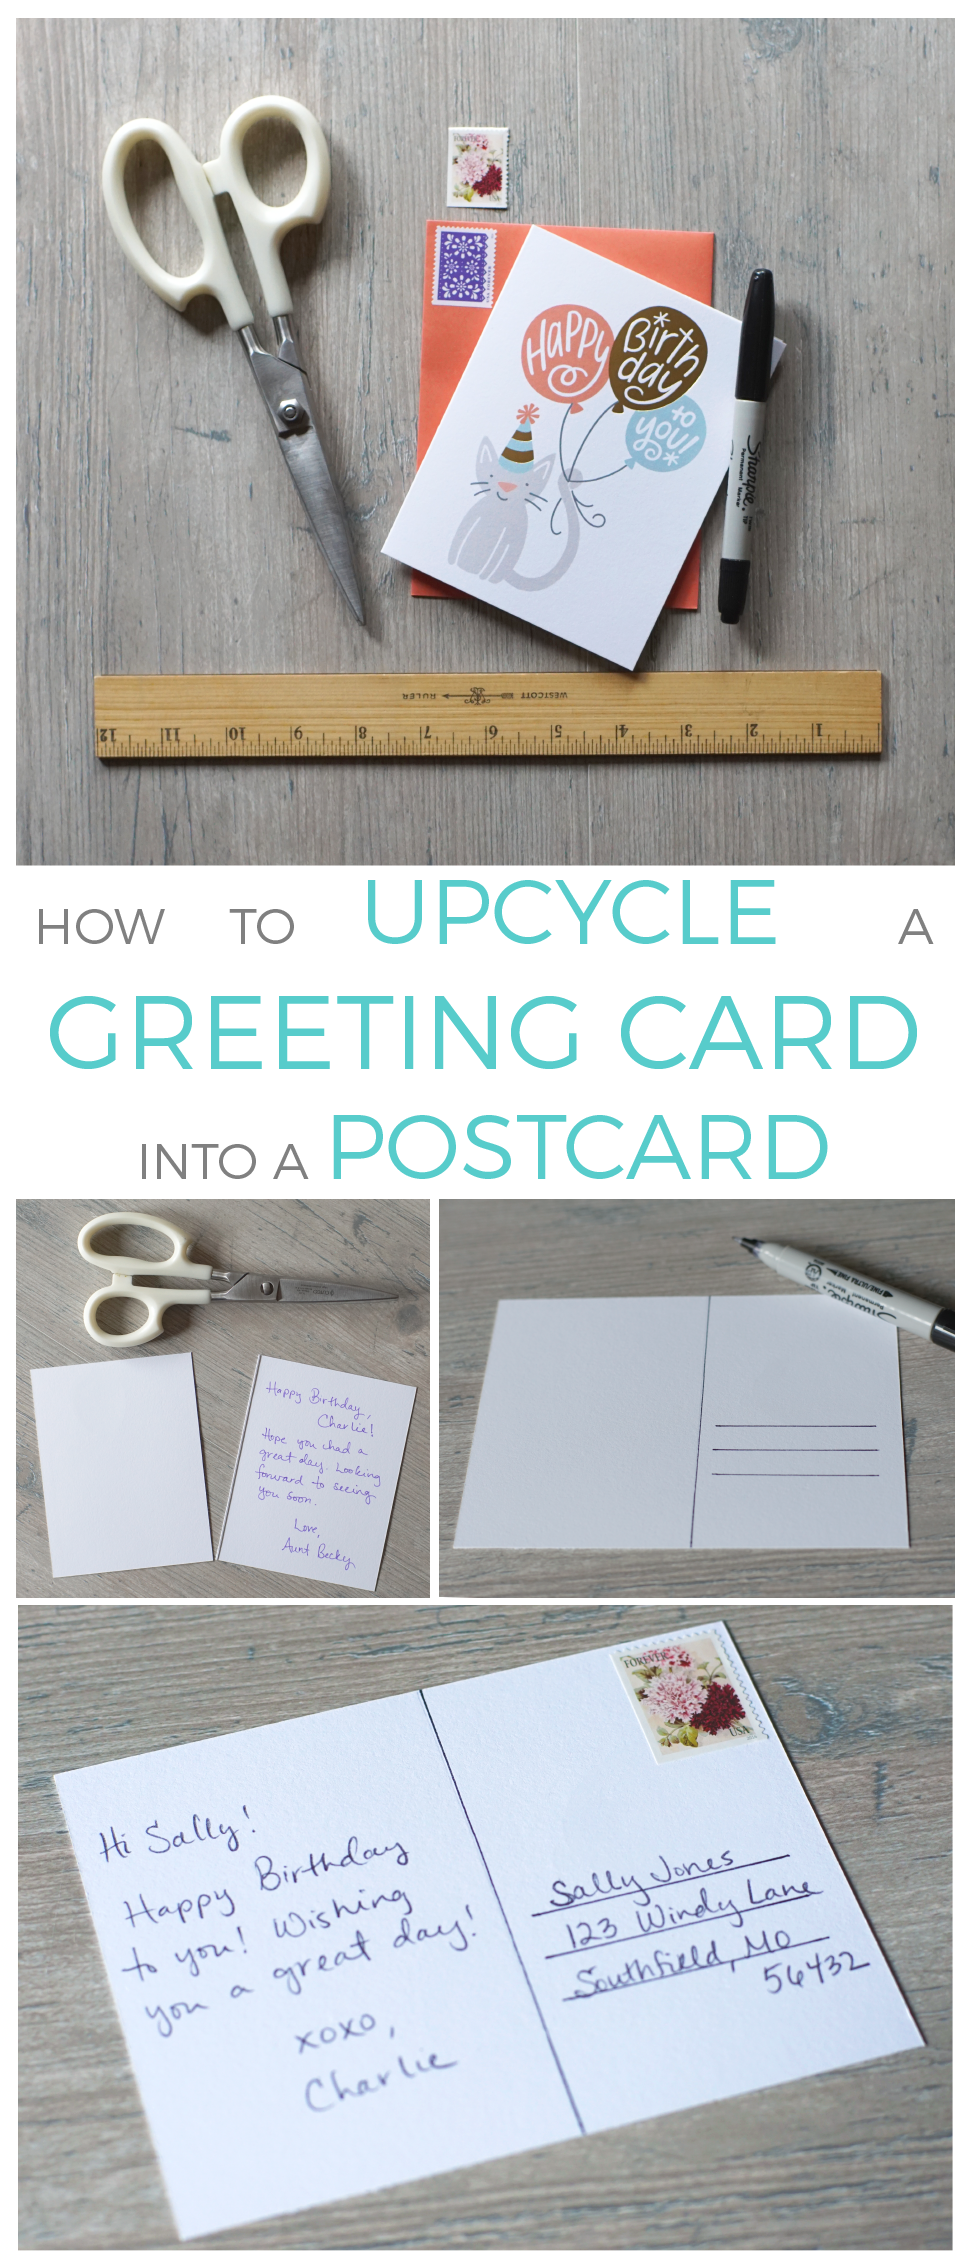 Reuse your old greeting cards by turning them into postcards in reuse your old greeting cards by turning them into postcards in just a few short steps kristyandbryce Images